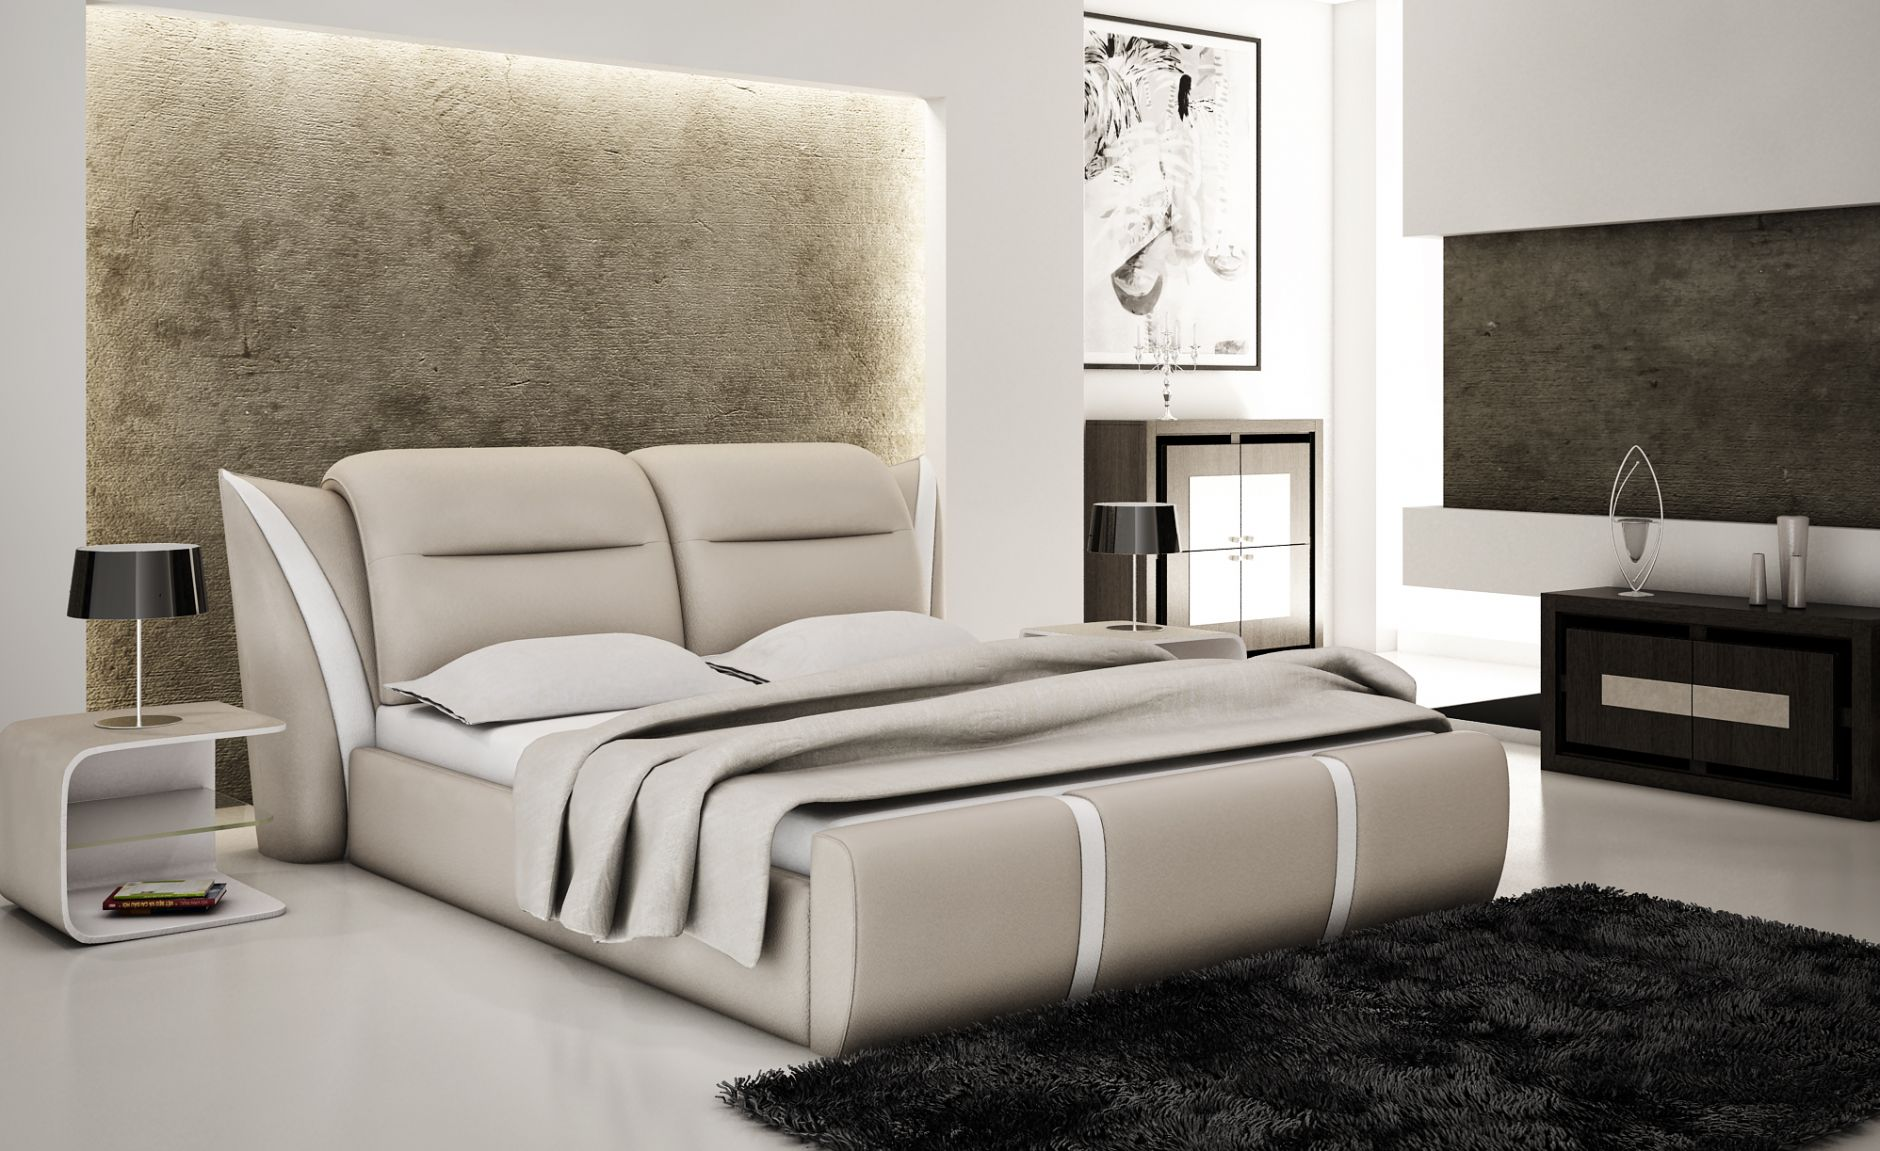 Modele chambre a coucher for Mobilier pour chambre adulte